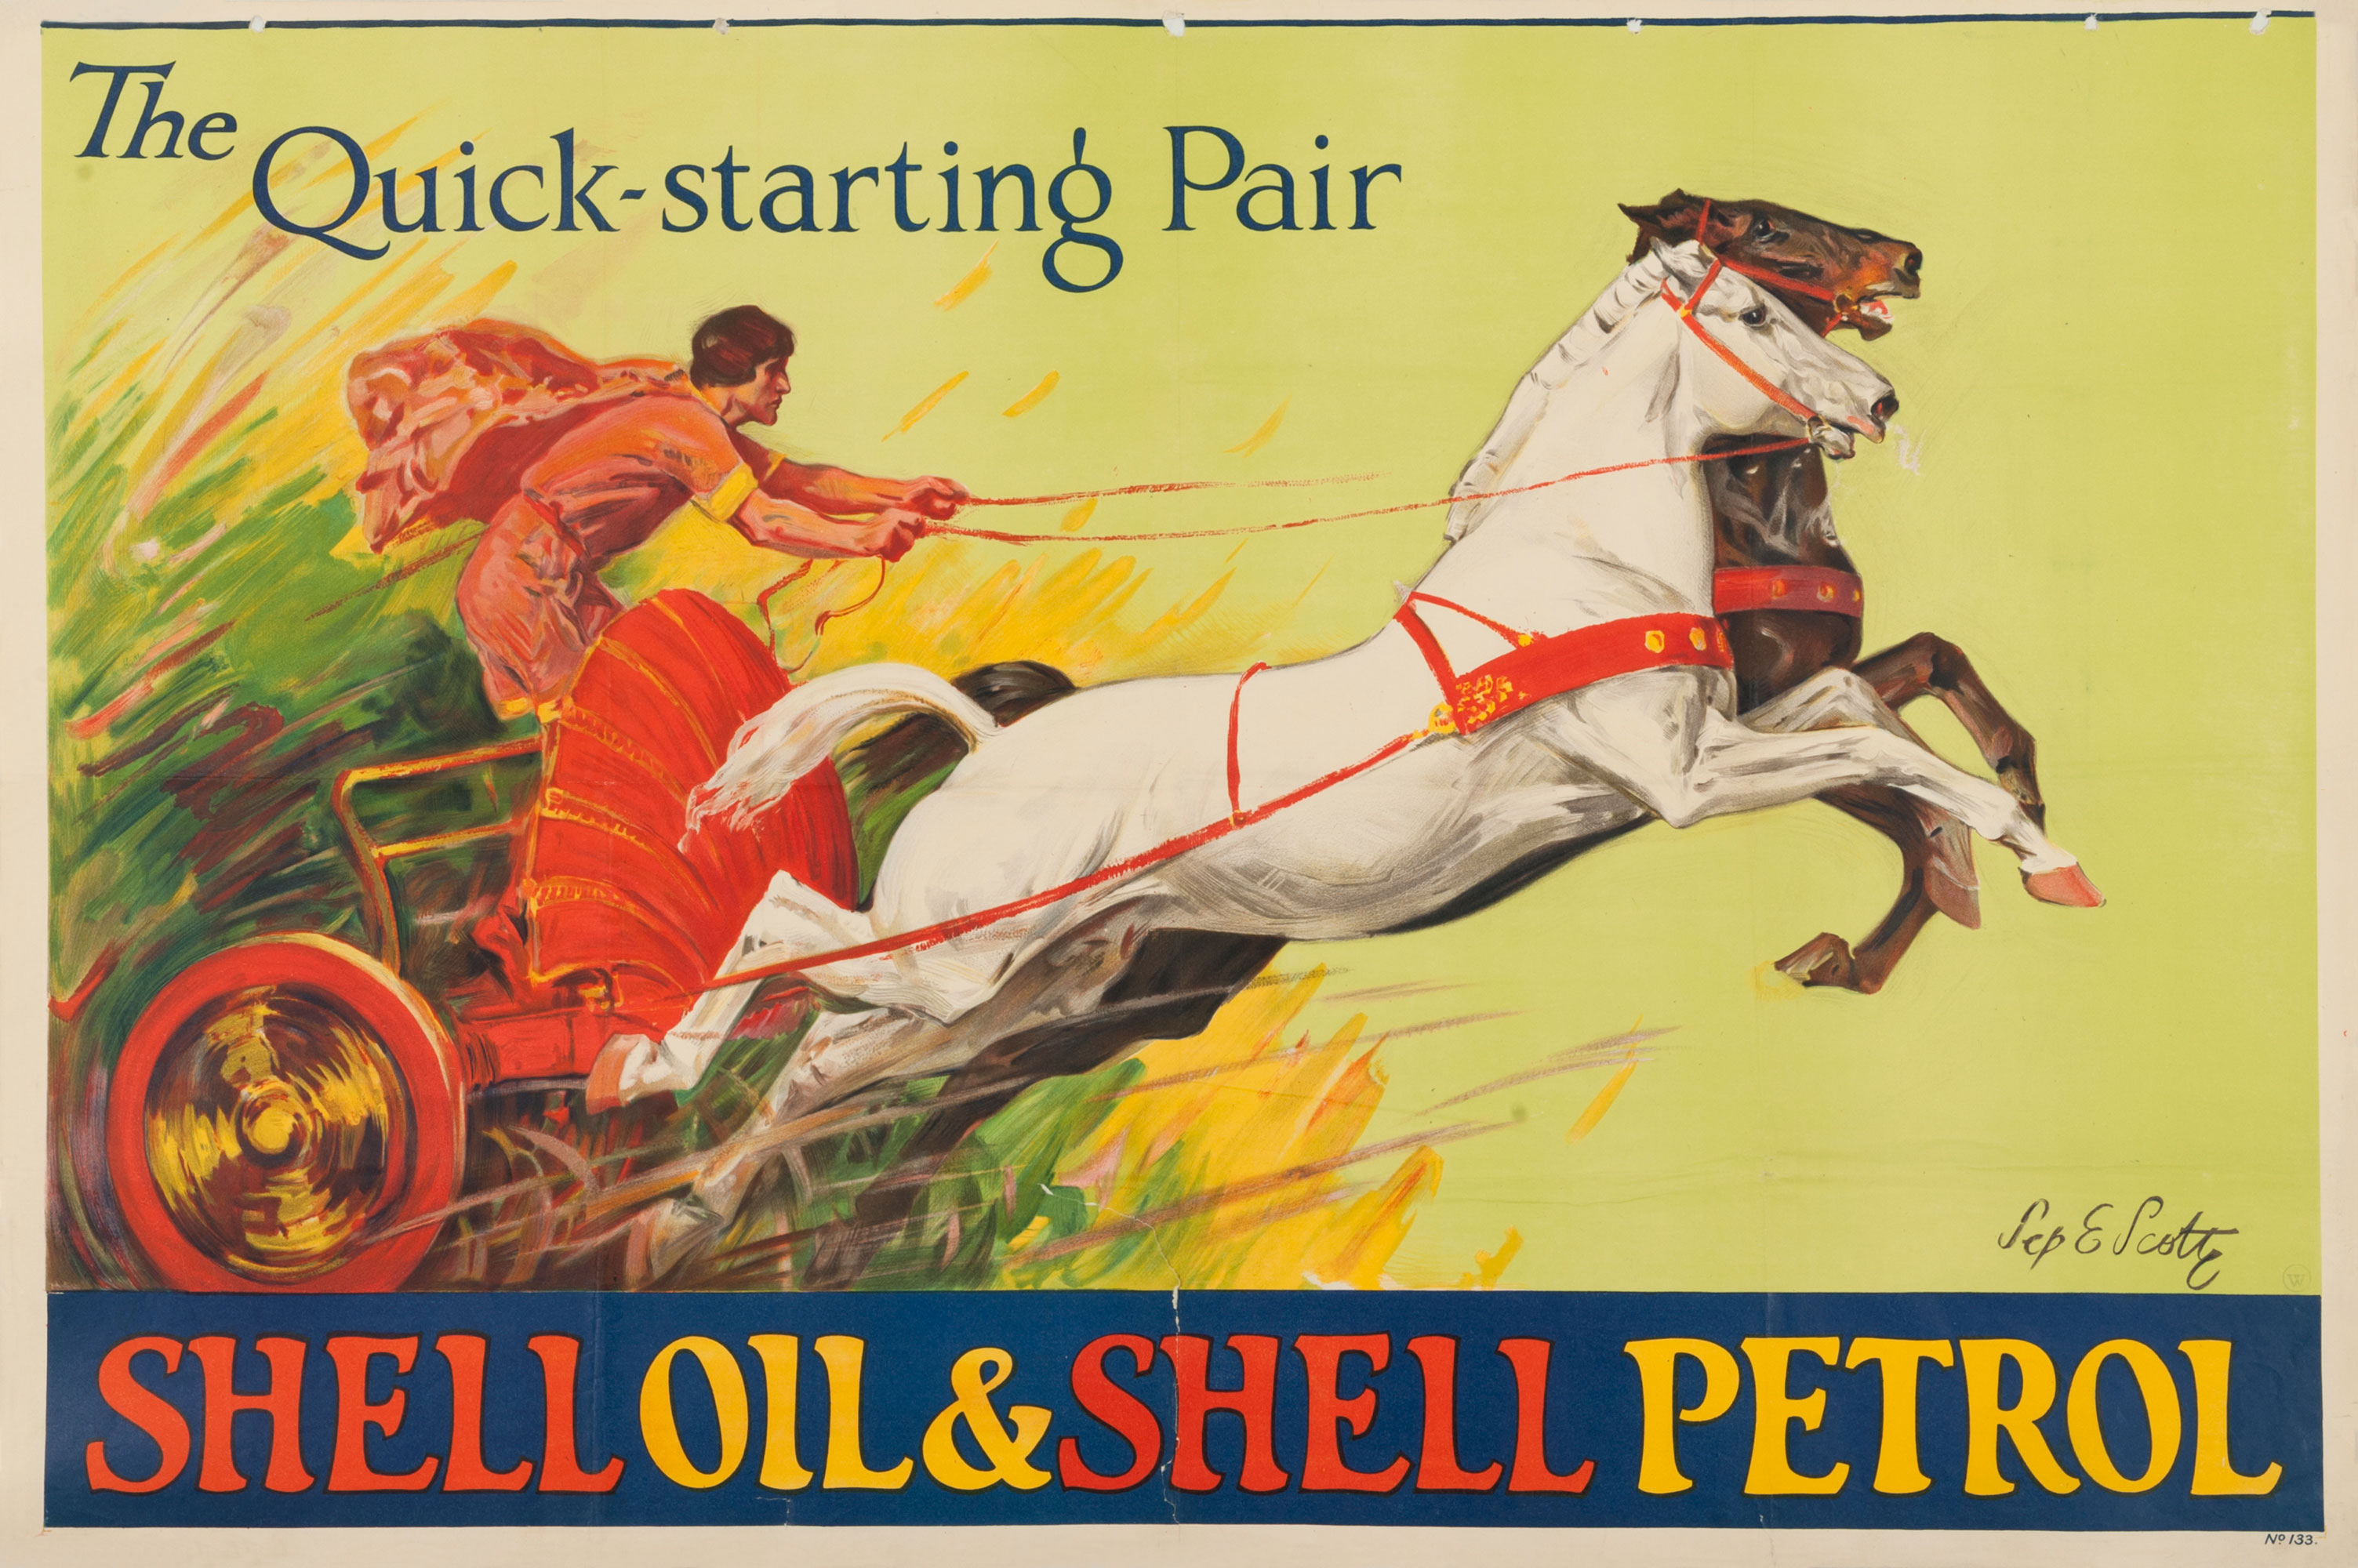 Shell poster number 133, The quick starting pair by Septimus Edwin Scott, Chariot and Two Coloured Horses. Painting shows a Roman riding a chariot with two horses, to represent the reliability and power of using Shell's products simultaneously.